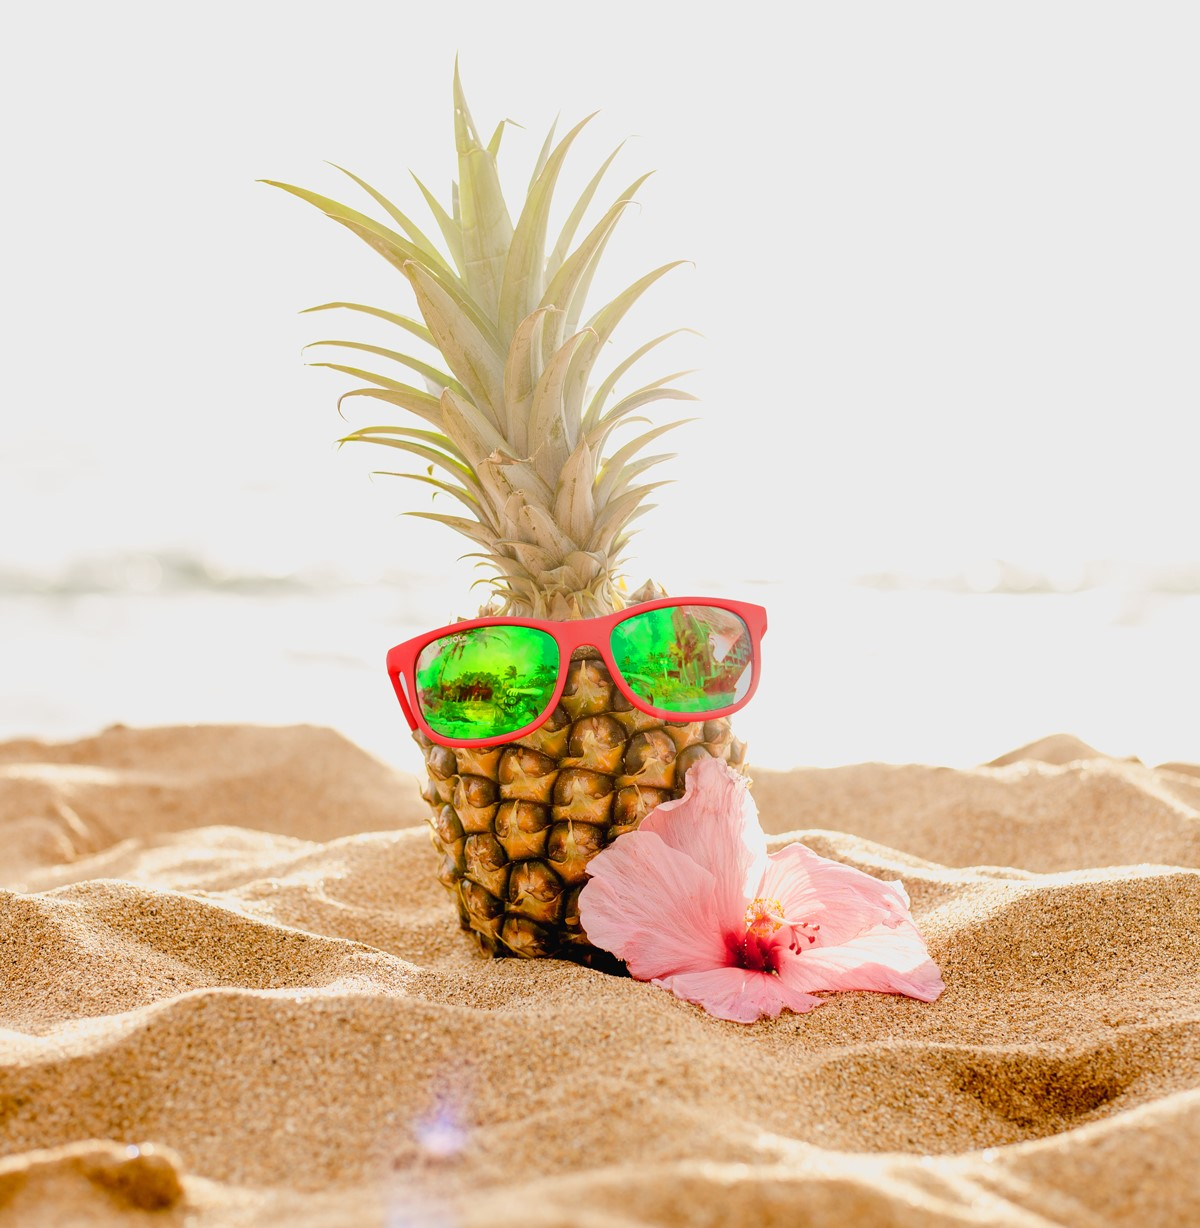 hawaii-solize-sunglasses-pineapple